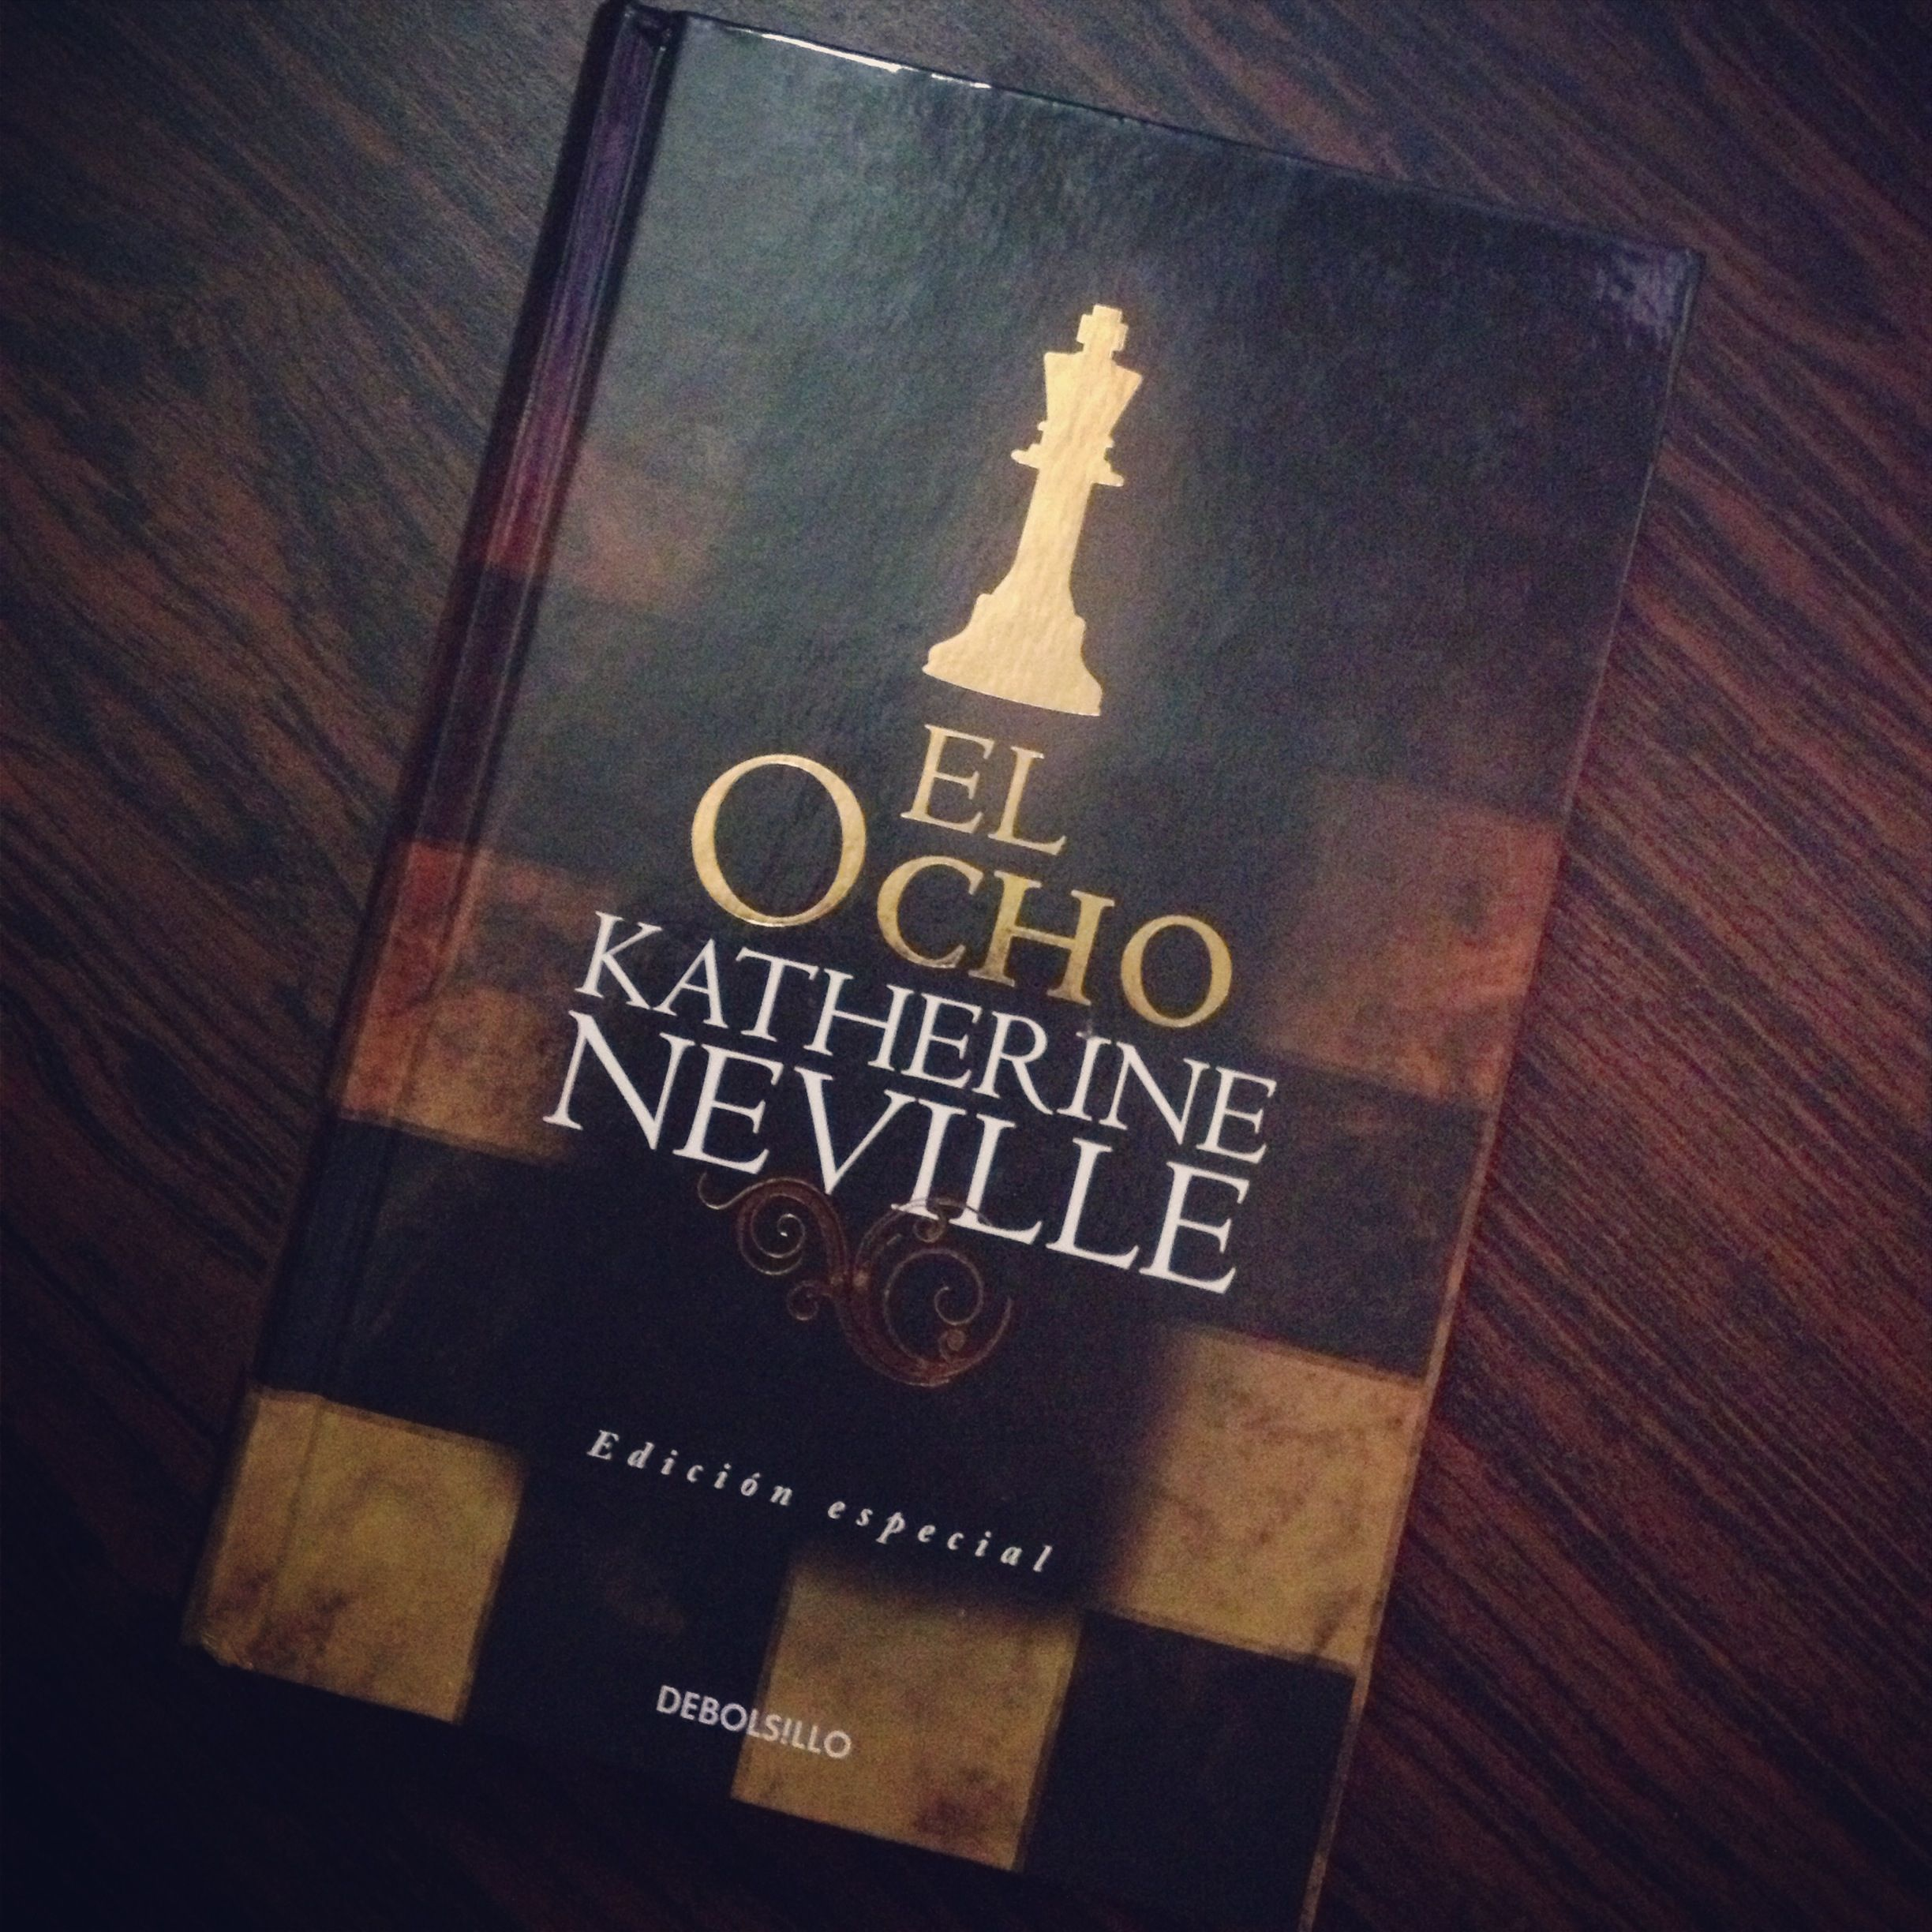 Quiero Leer Un Libro Gratis El Ocho Katherine Neville Movies And Books Pinterest